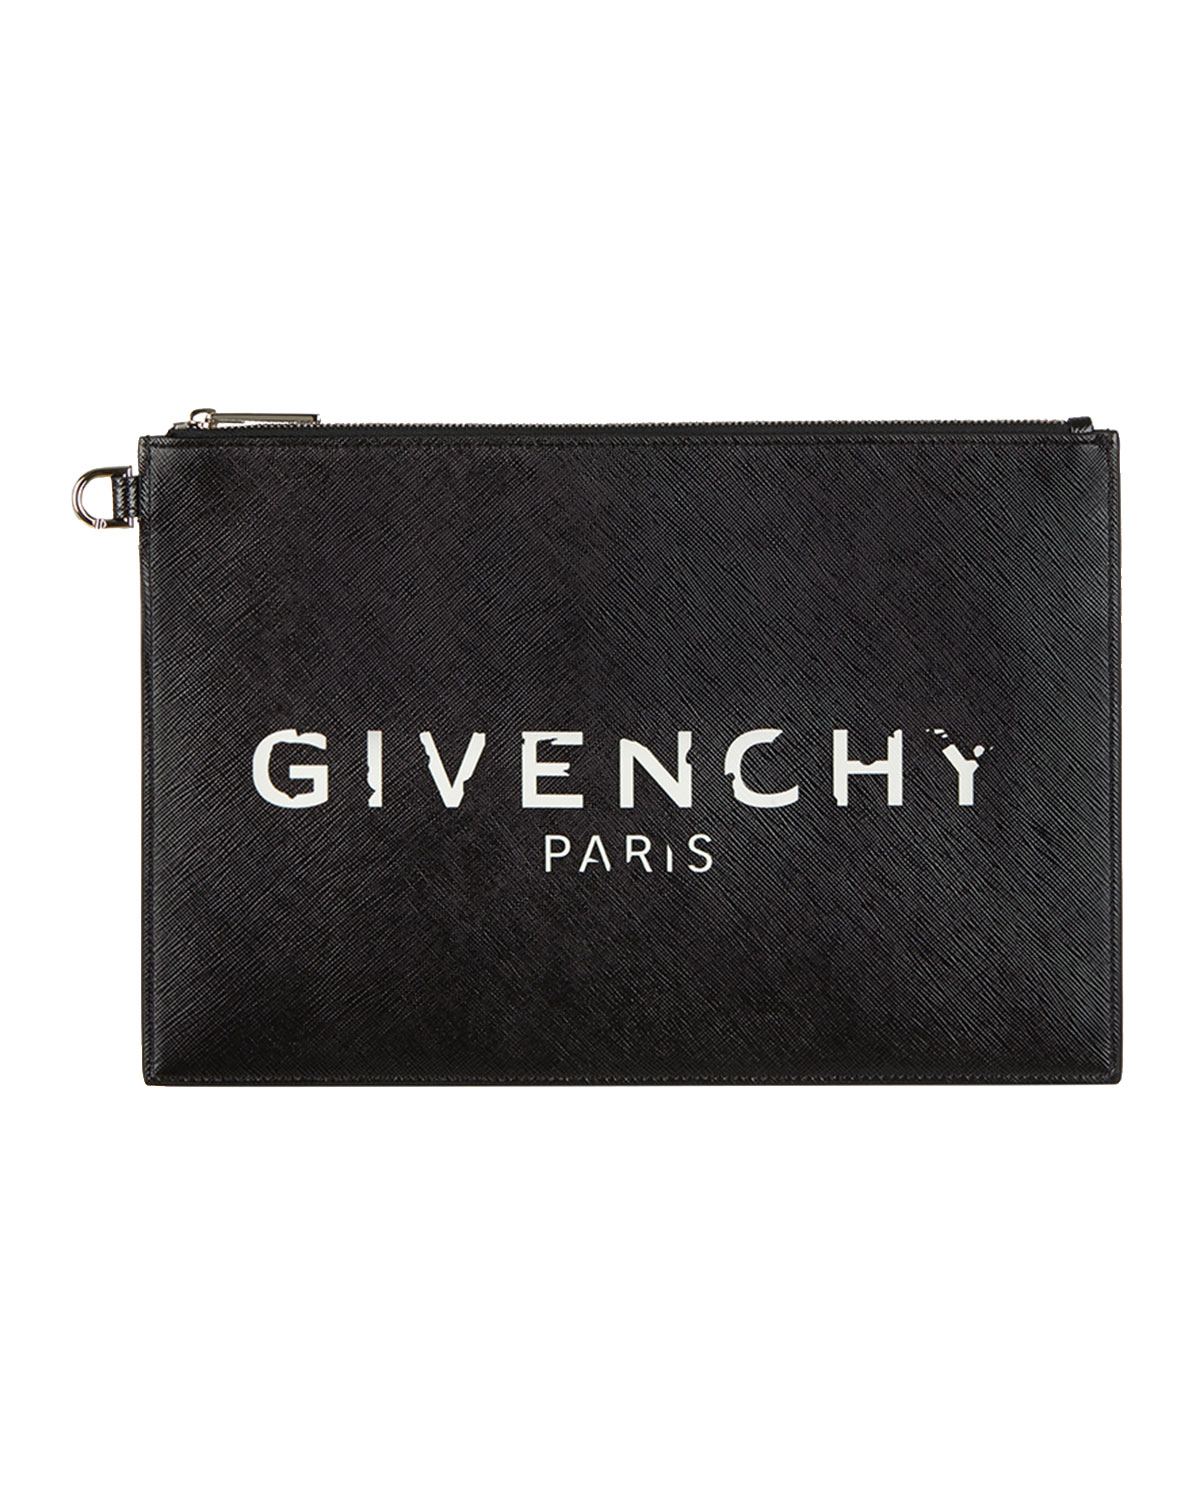 Givenchy Accessories ICONIC PRINTS FLAT MEDIUM POUCH CLUTCH BAG